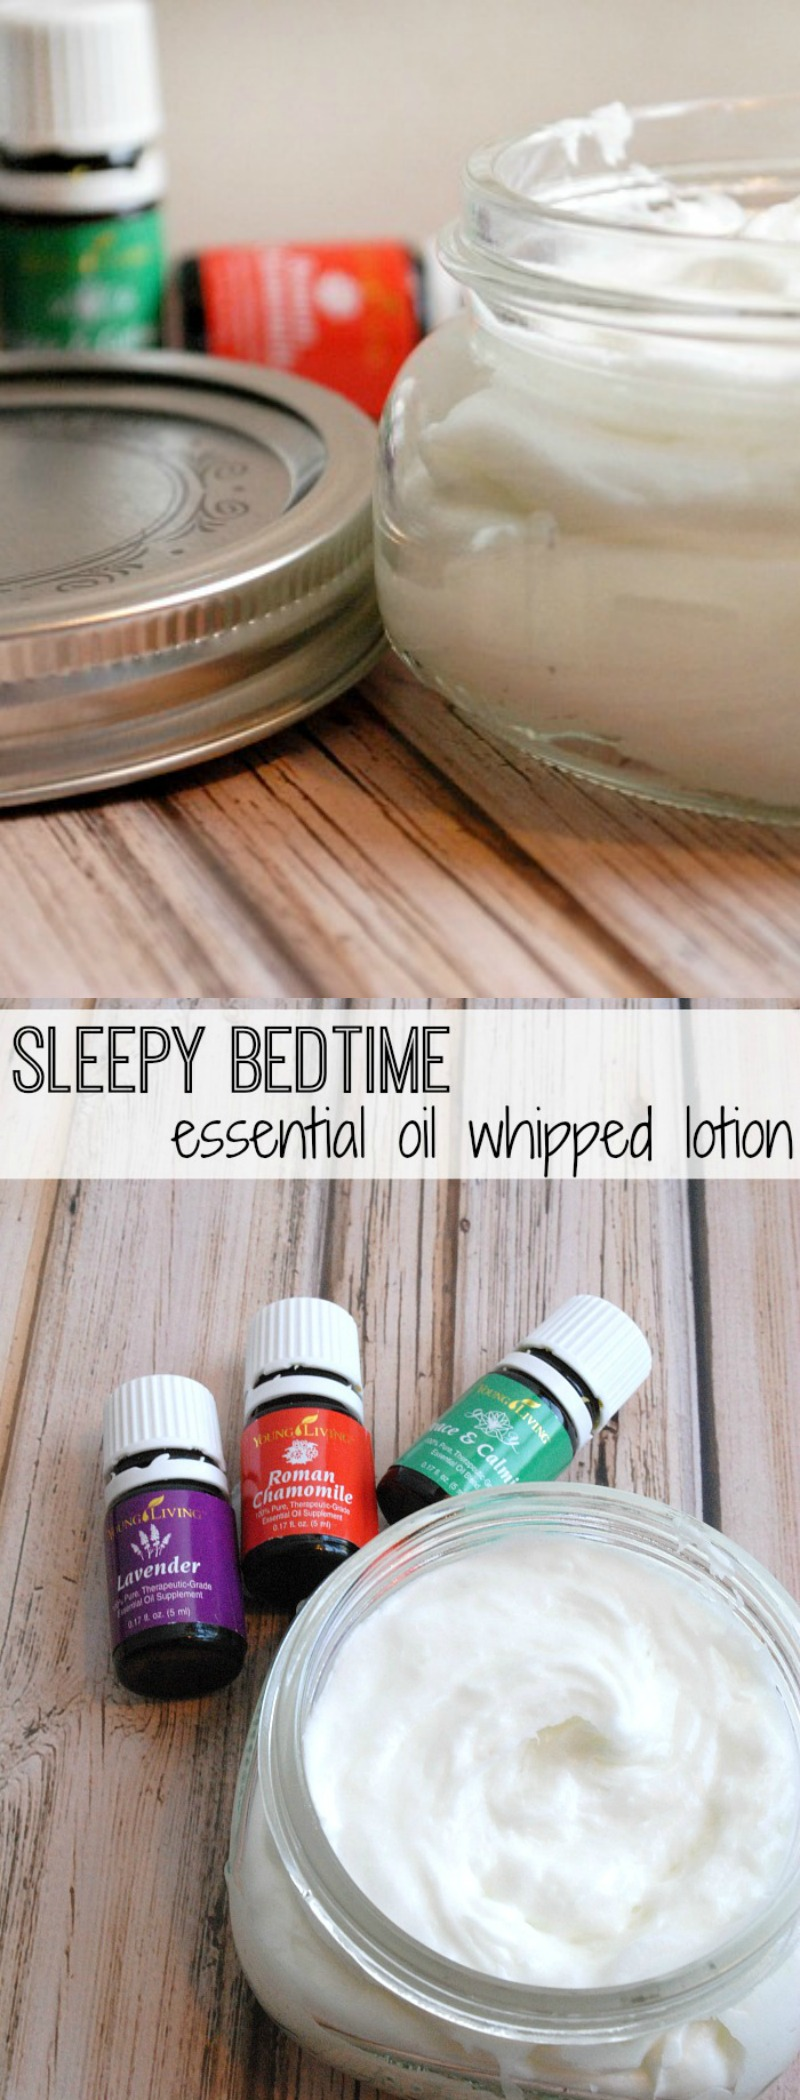 Sleepy Bedtime Whipped Lotion with essential oils